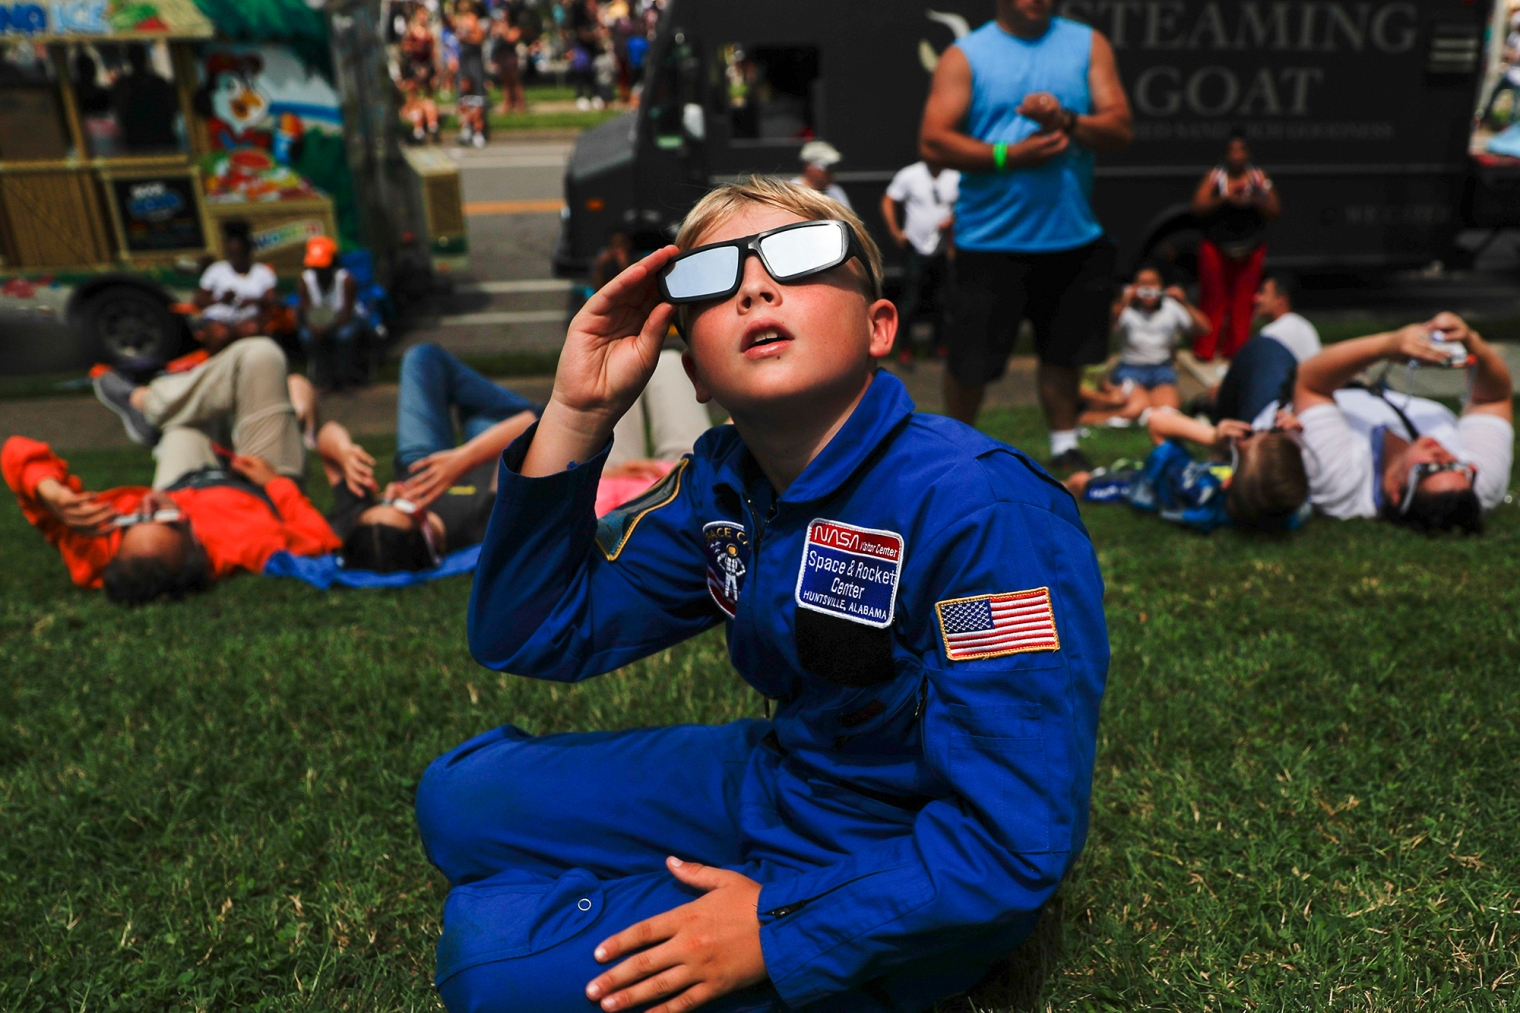 Tyler Hanson, of Fort Rucker, Ala., watches the sun moments before the total eclipse on Aug. 21, 2017, in Nashville, Tenn.